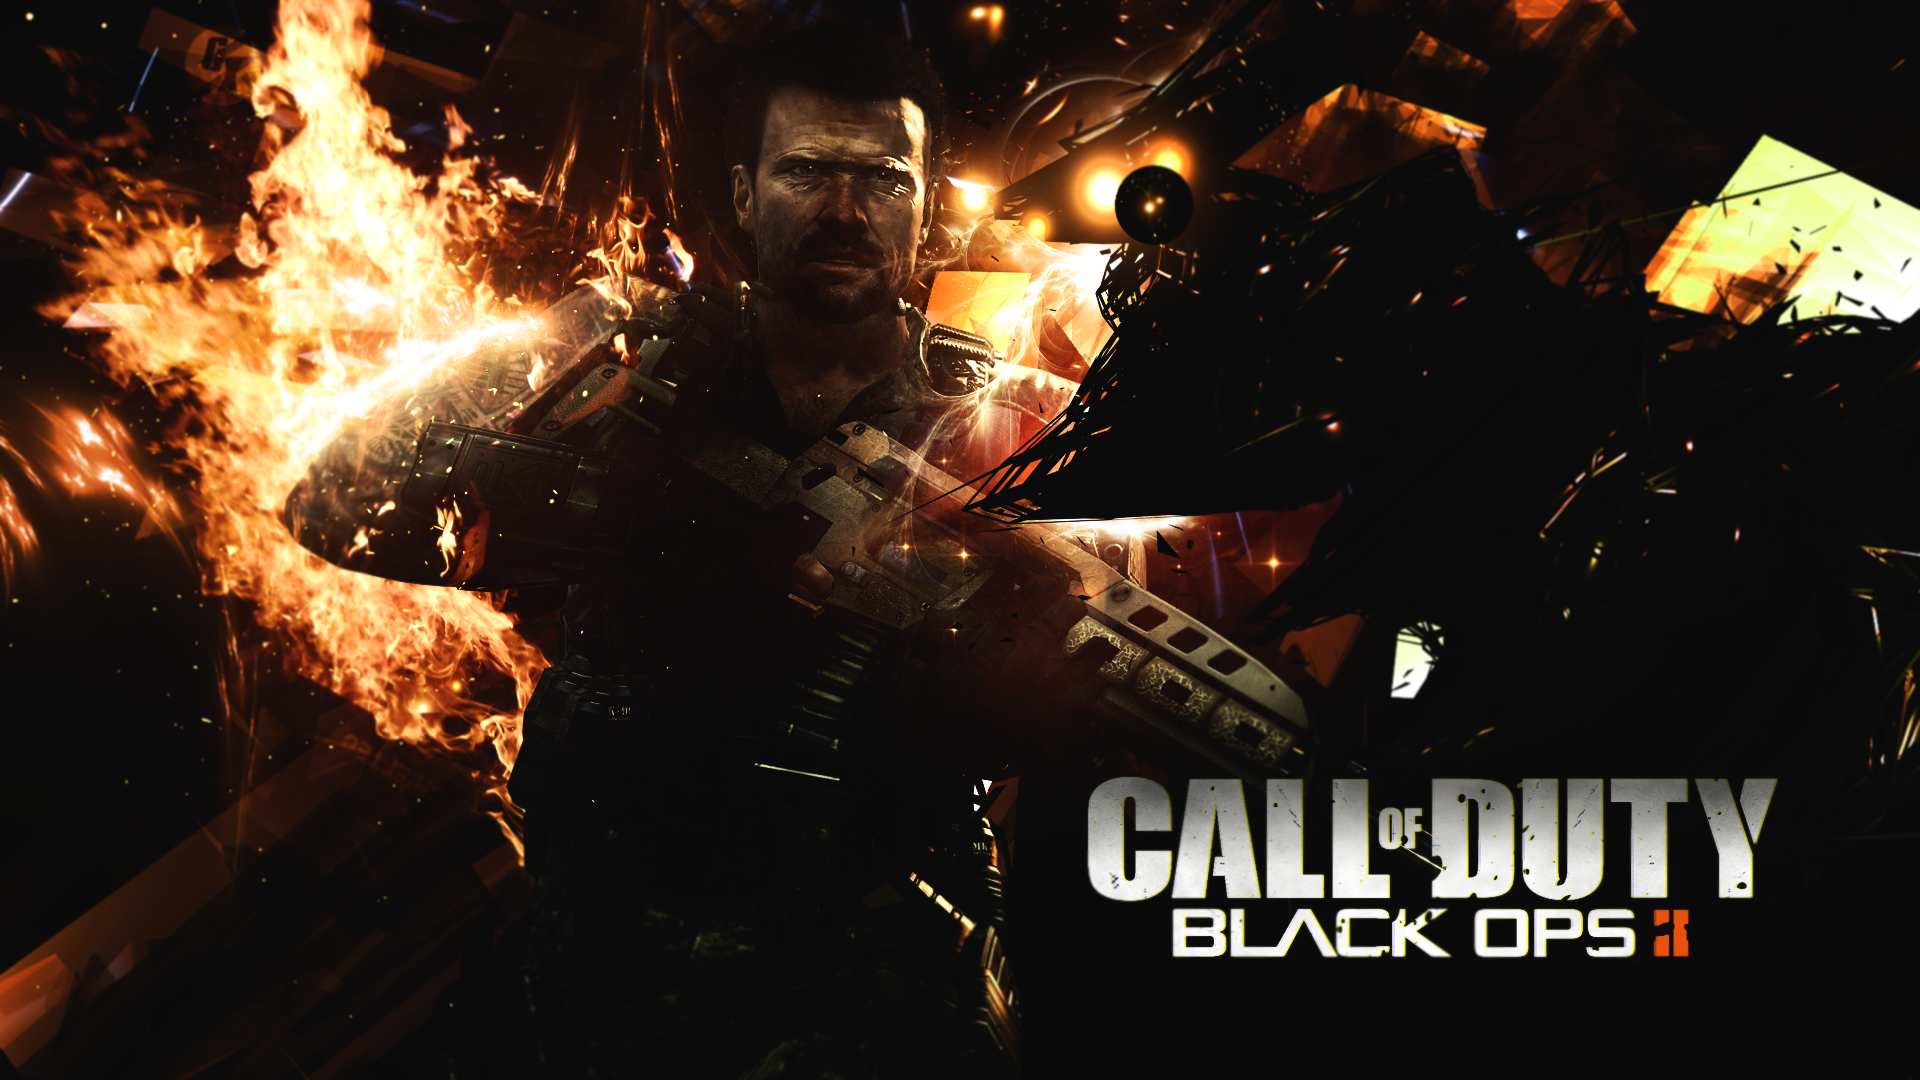 Call Of Duty Black Ops 2 High Quality Wallpaper 760968 1920x1080